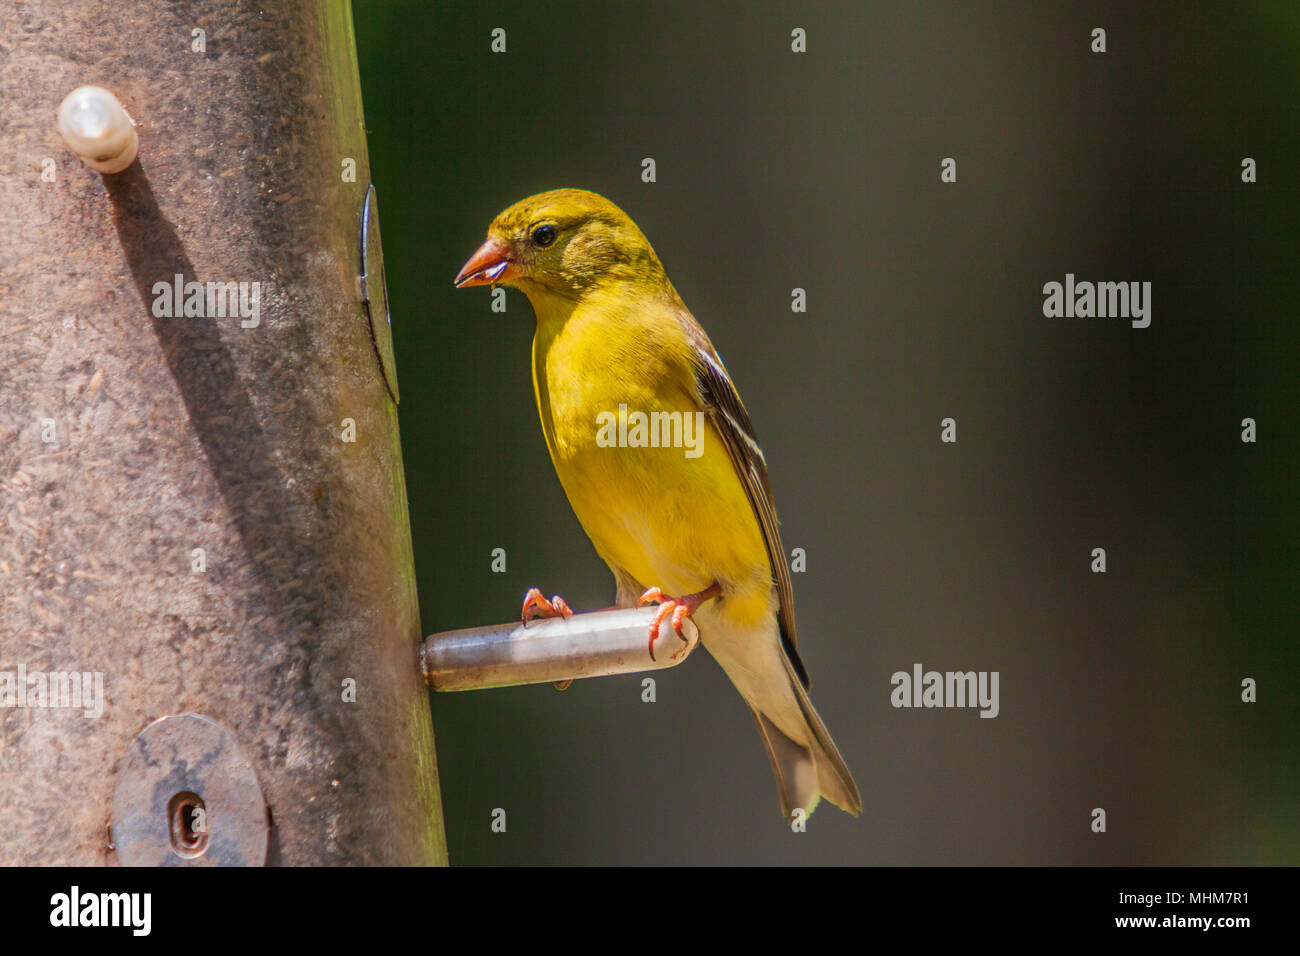 Male American Goldfinch, Spinus tristis, at a feeder in backyard in McLeansville, NC. - Stock Image